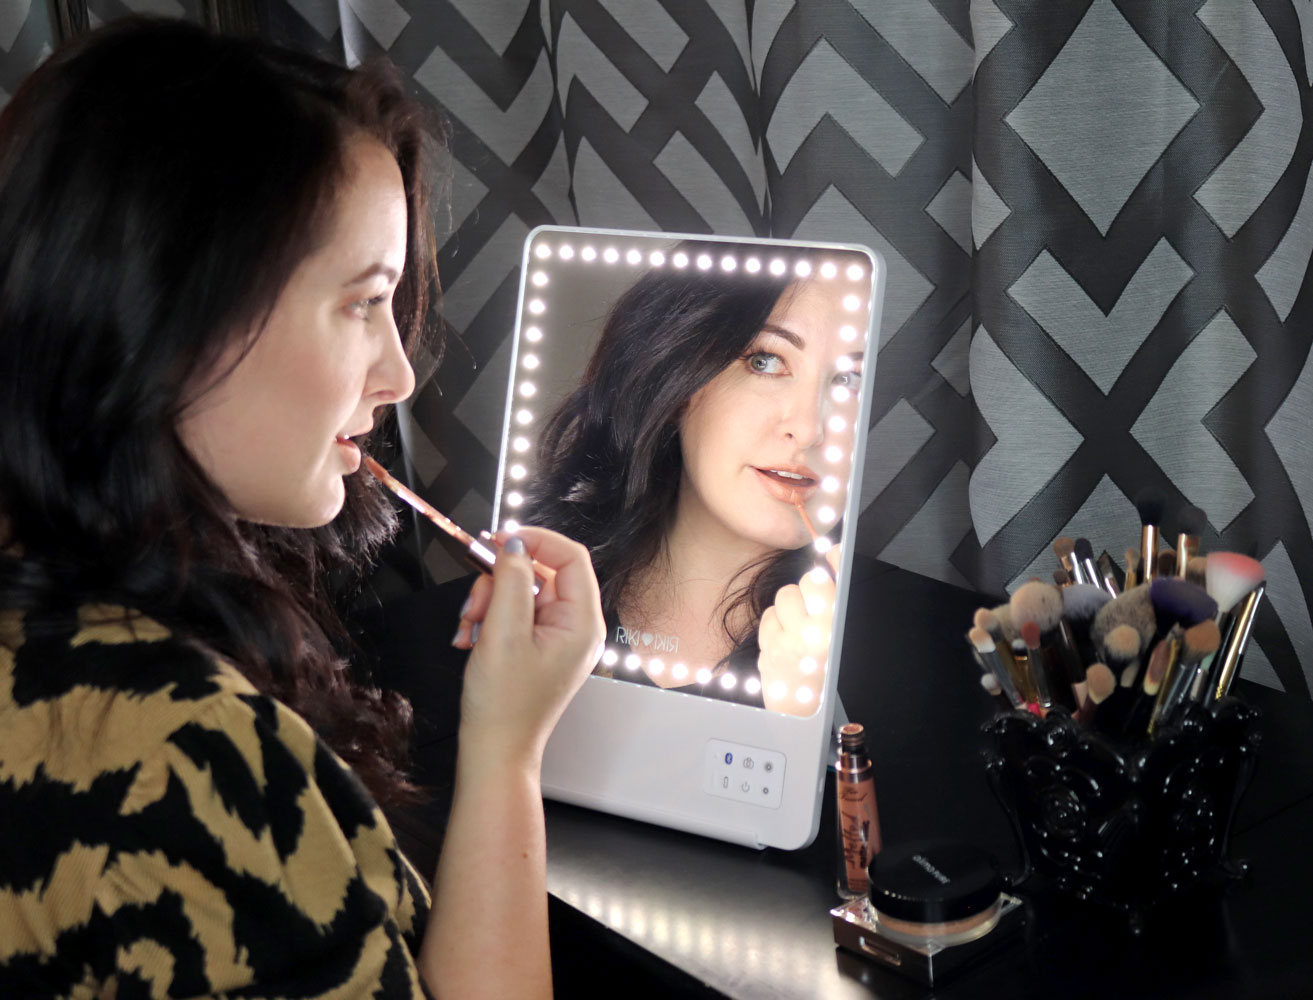 Glamcor Riki Skinny Vs Riki Tall Lighted Selfie Mirrors Review